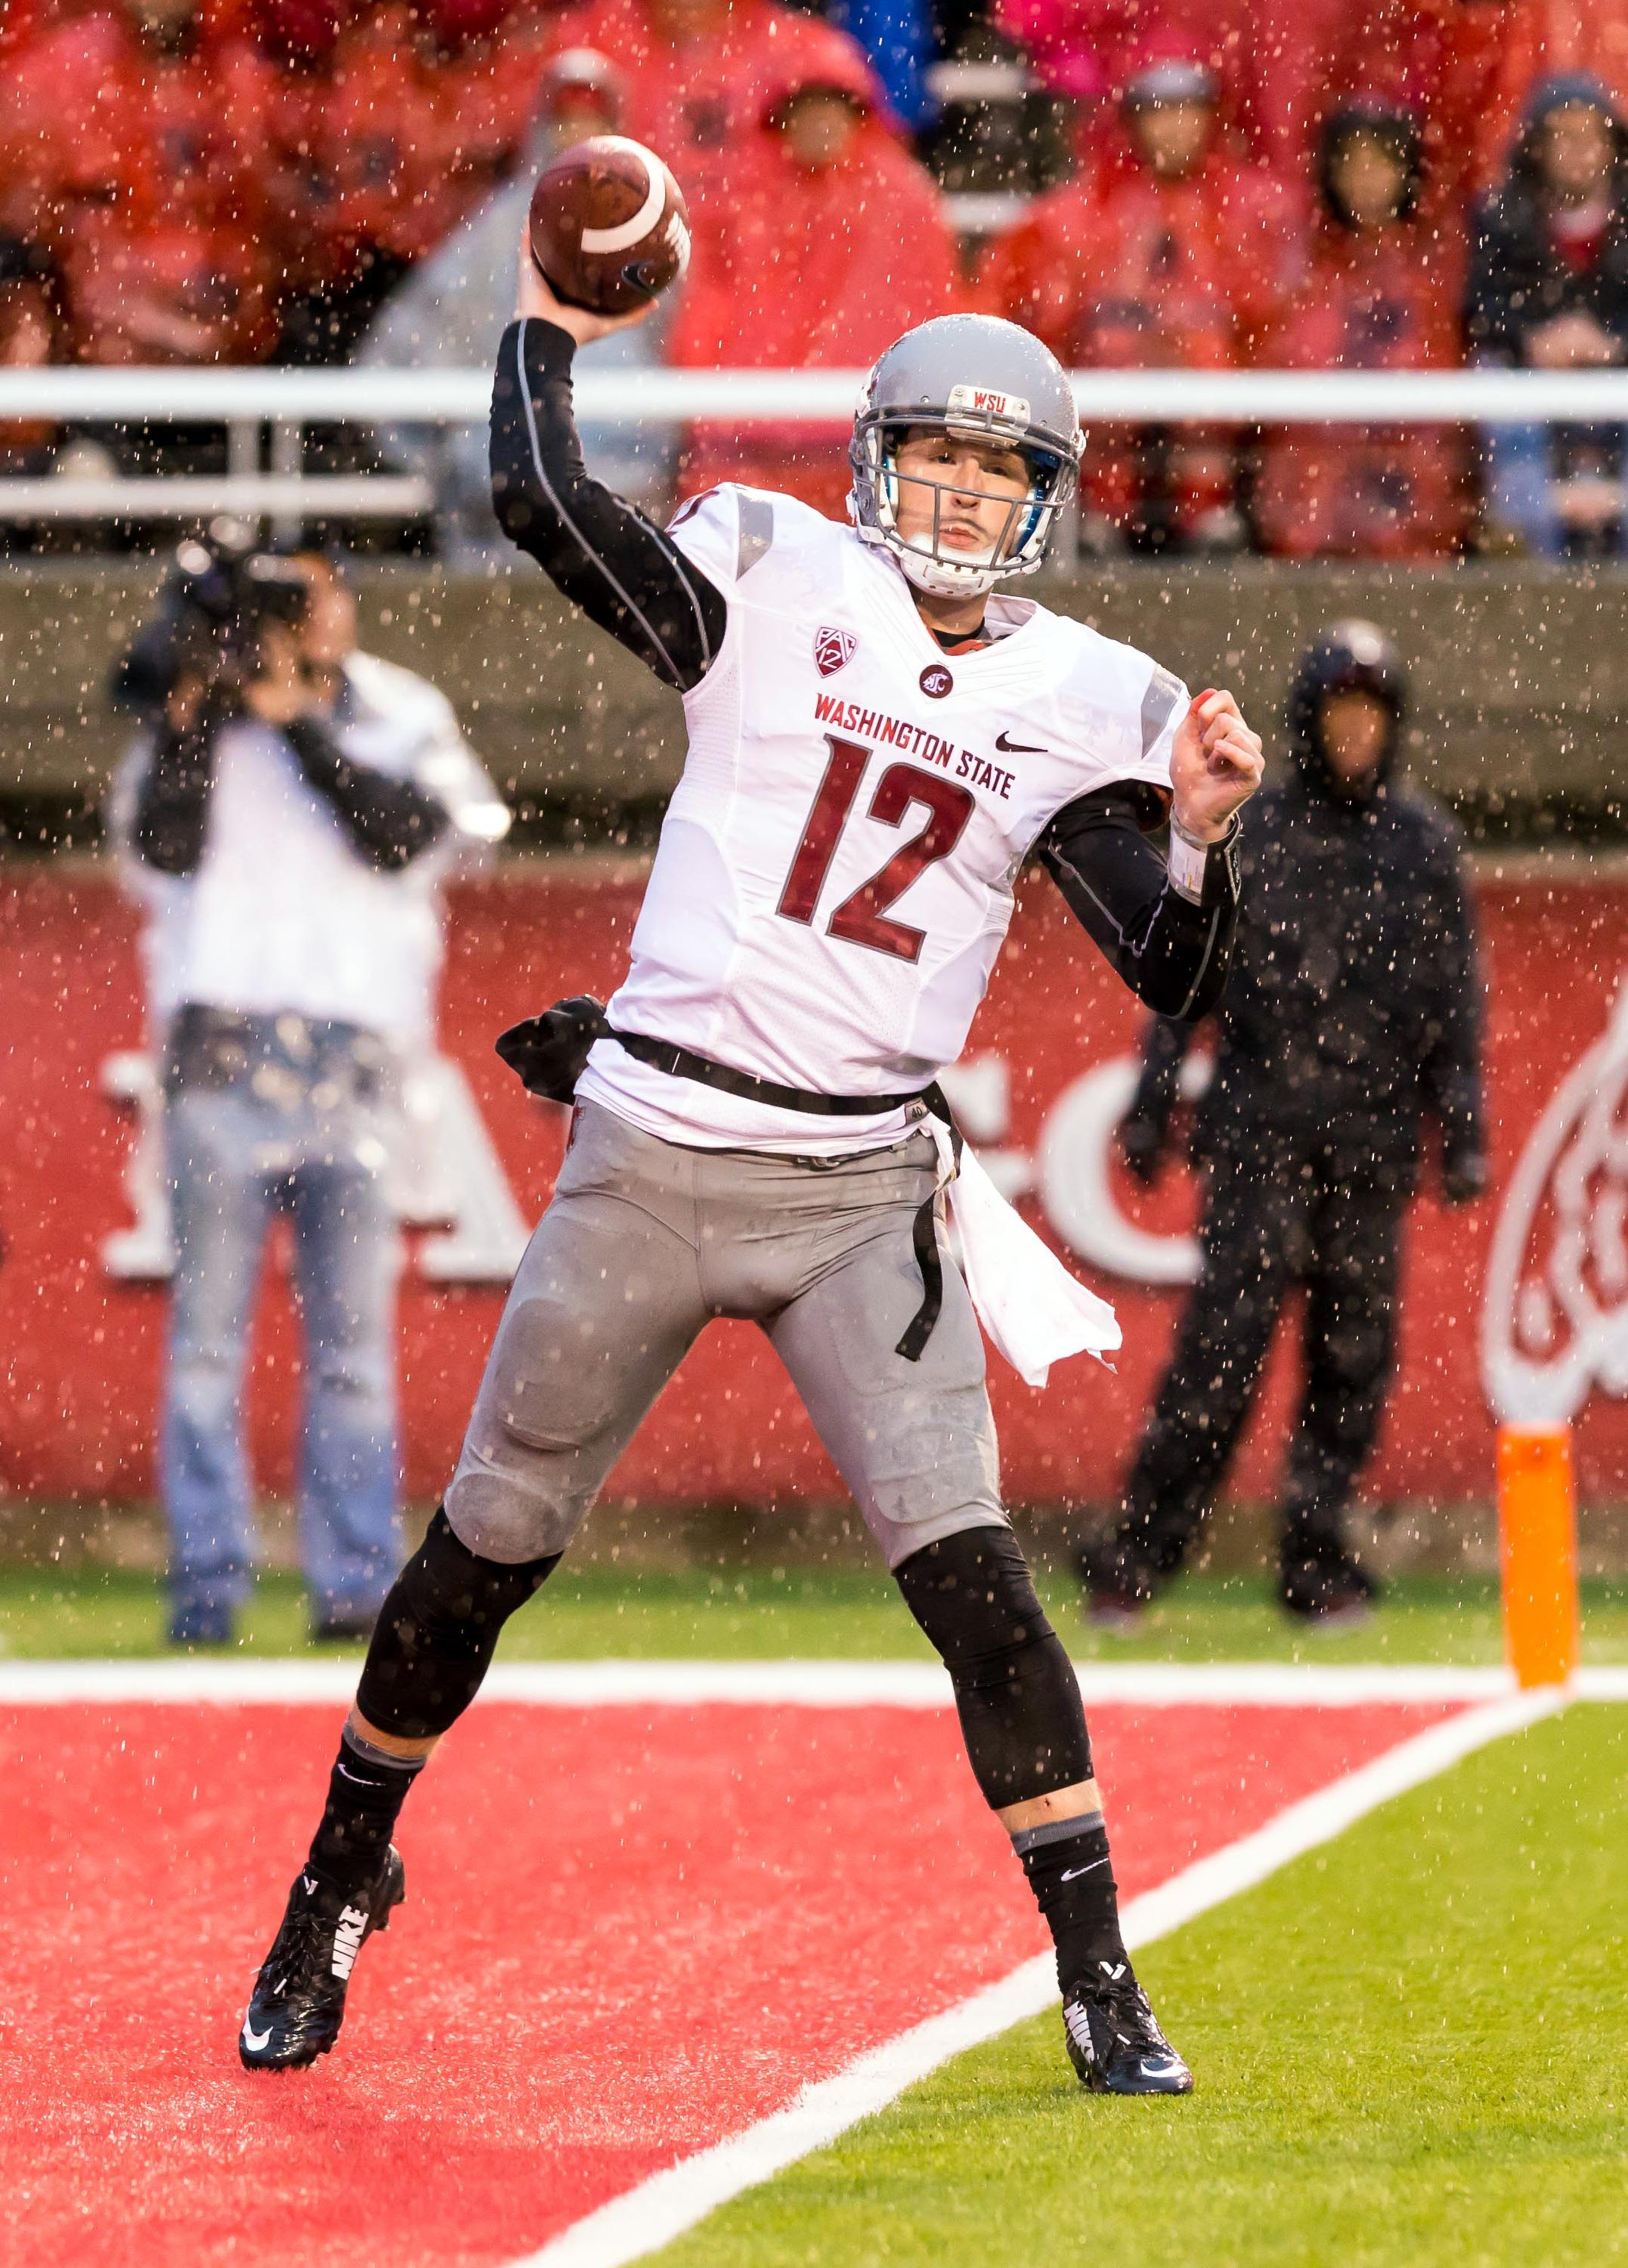 Despite the rain storm, Washington State quarterback Connor Halliday fired pass after pass to lead his Cougars to a 28-27 win over Utah in Rice-Eccles Stadium.